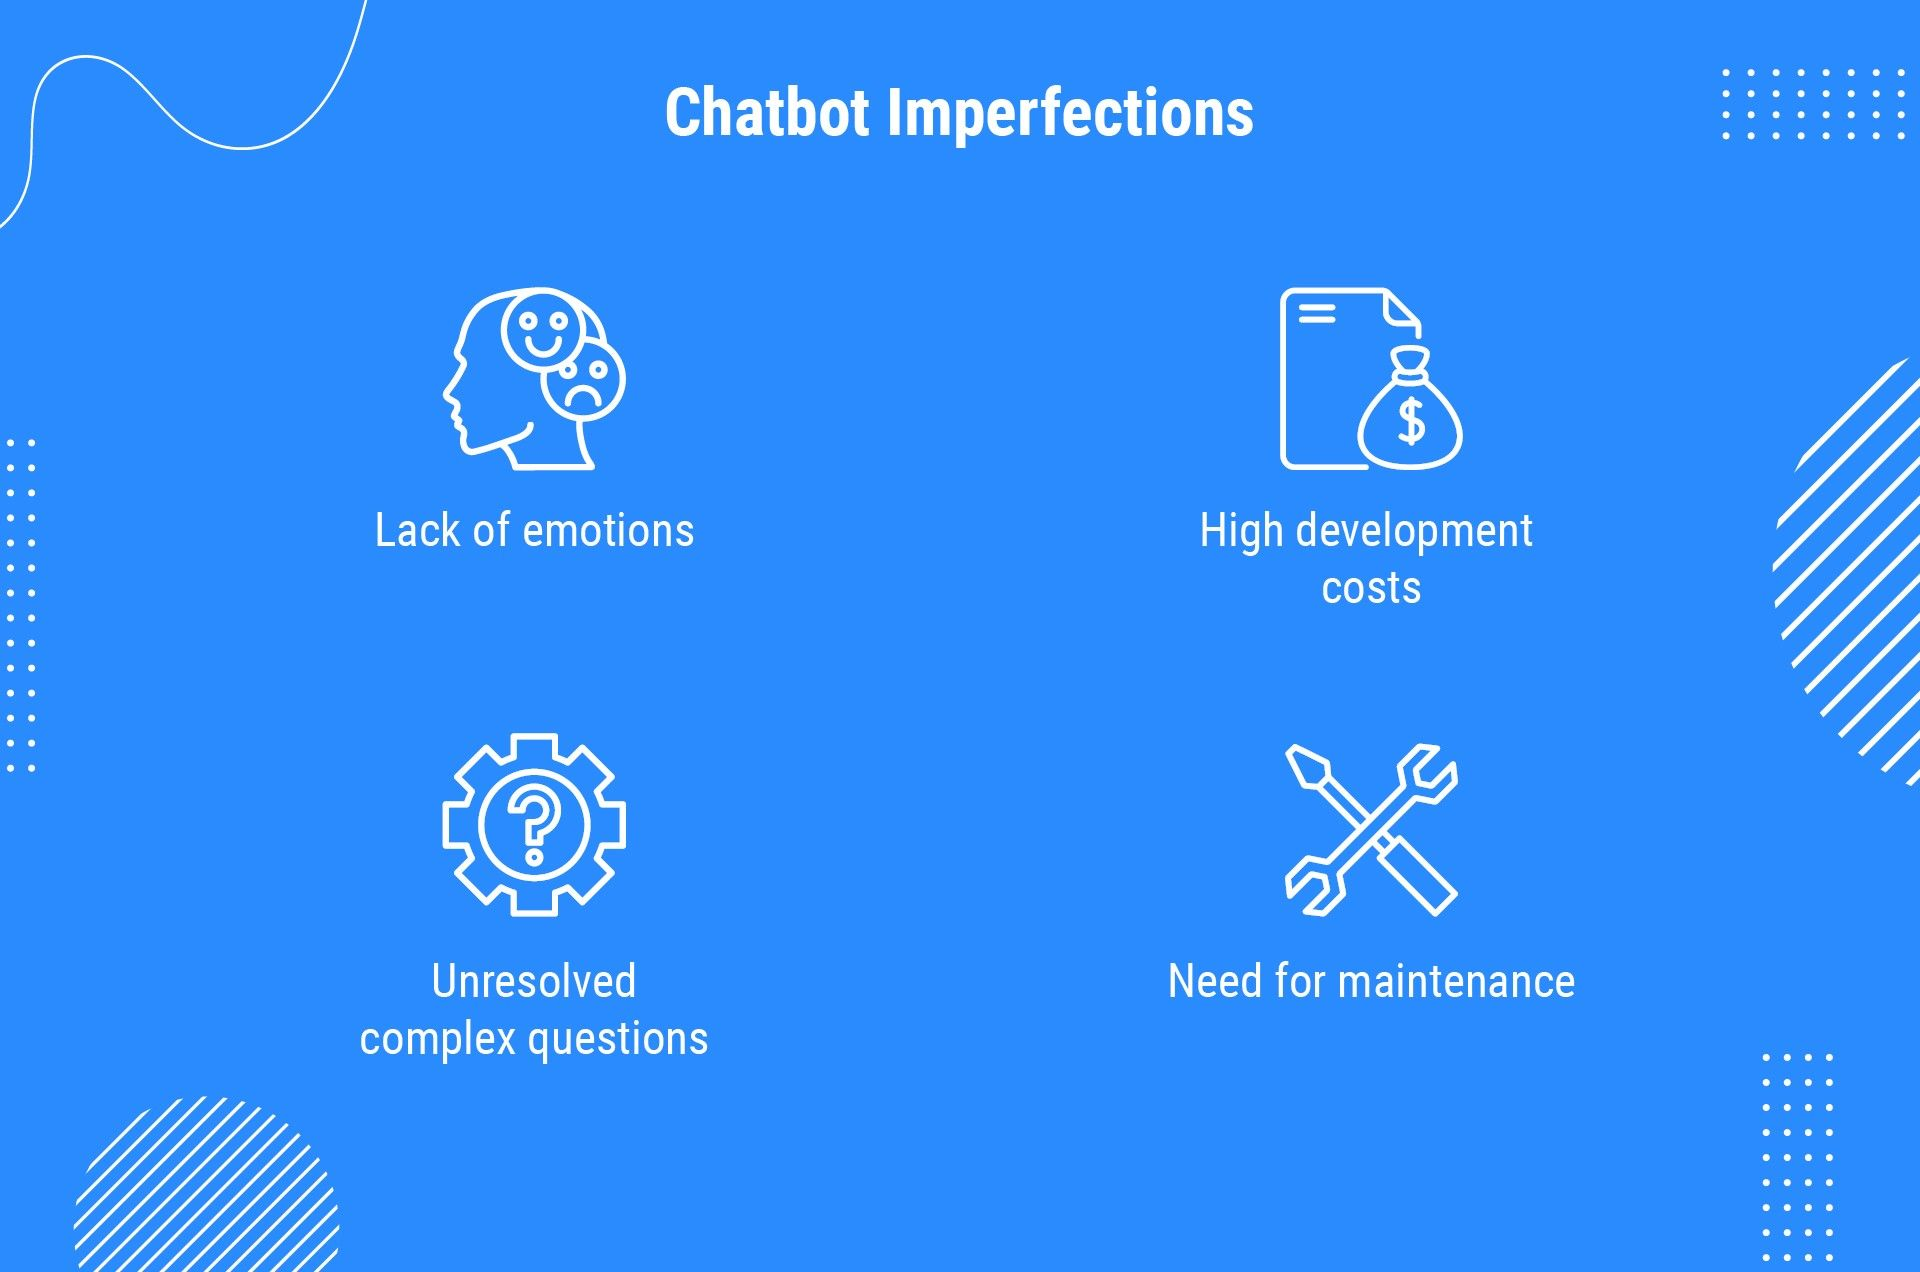 chatbot imperfections